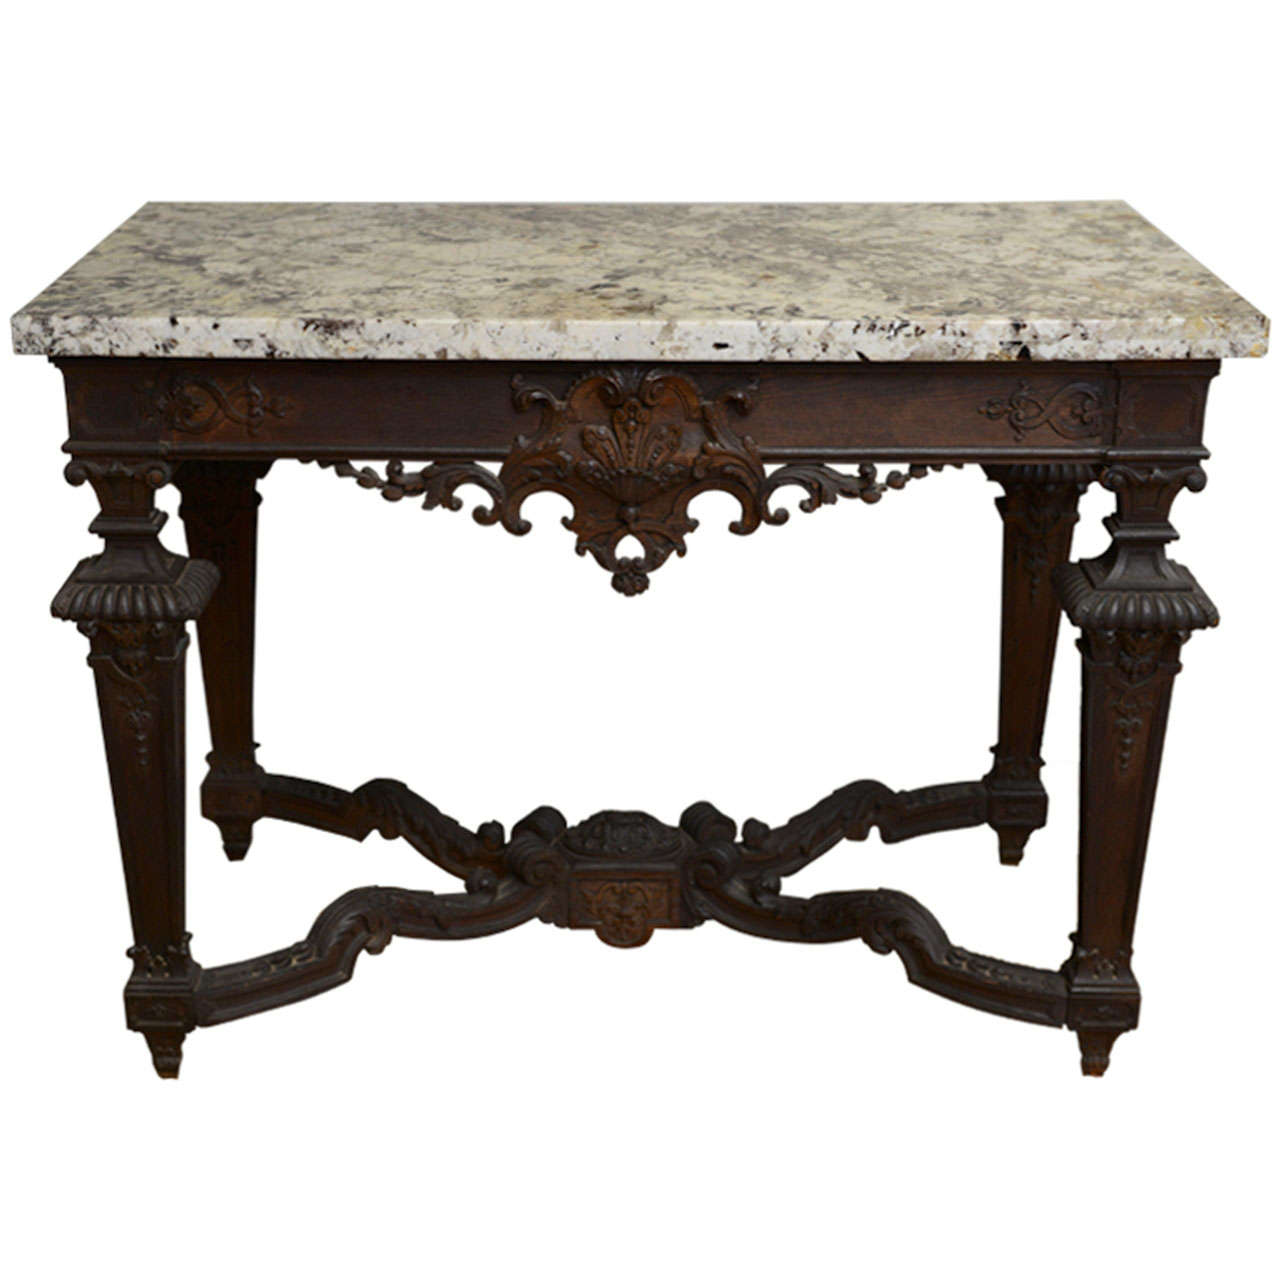 granite top sofa table pottery barn charleston slipcover craigslist finely carved 19c oak console with at